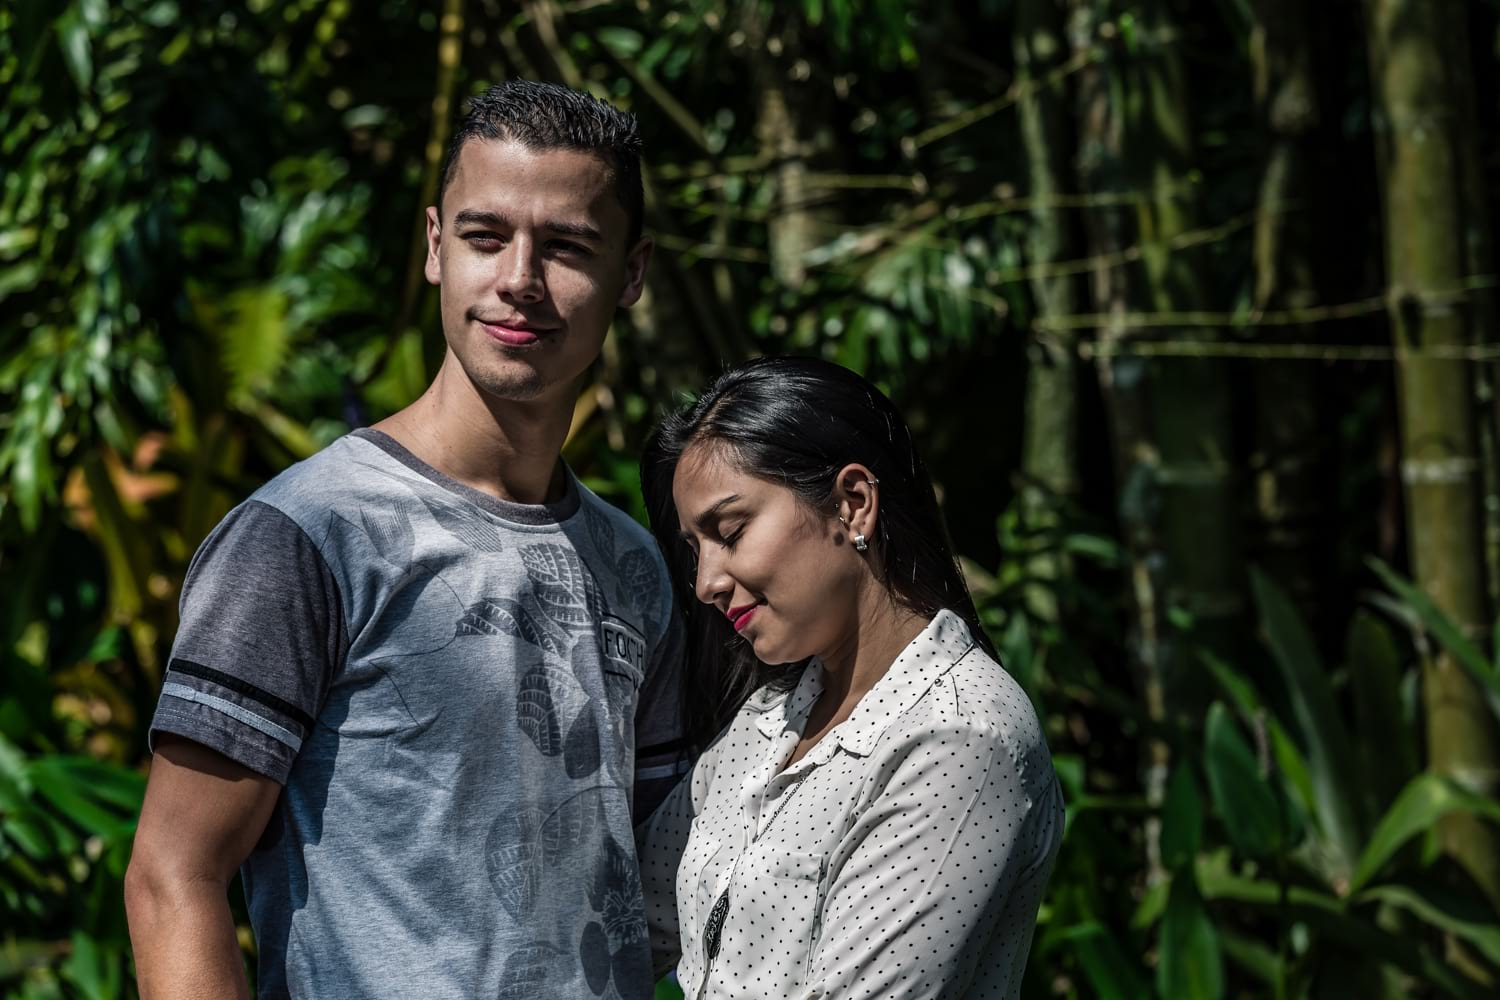 Young couple in Costa Rica botanical garden with their arms around each other for engagement picture.